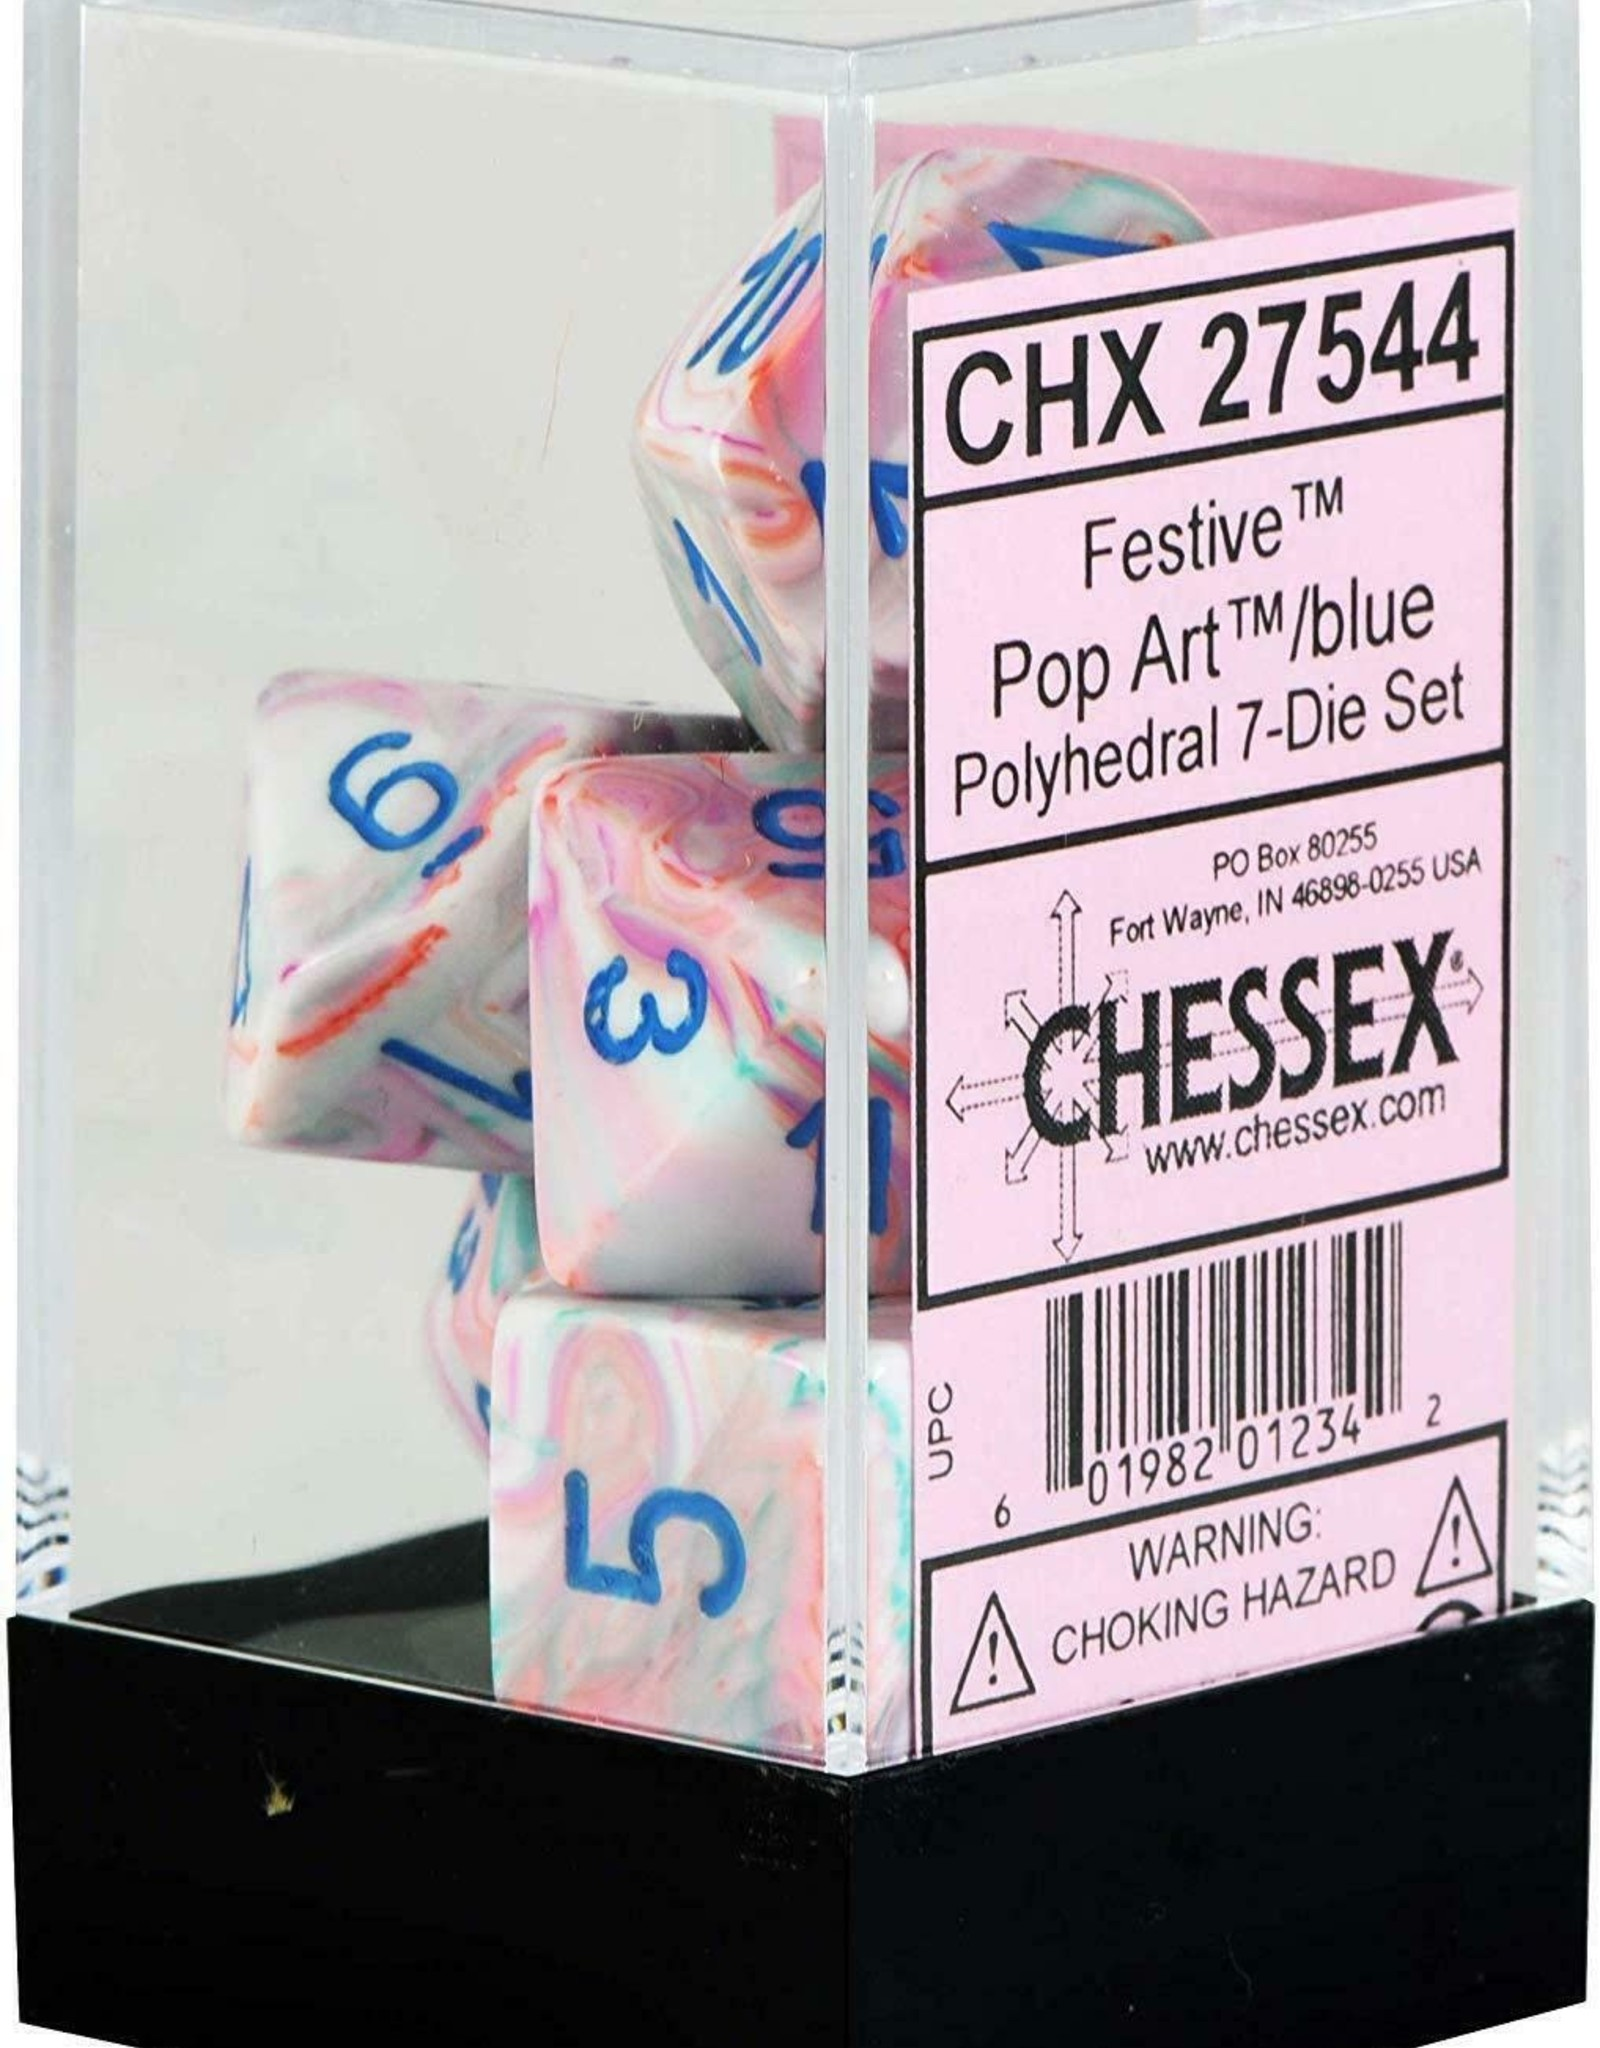 Chessex Festive Pop Art/blue Polyhedral Set